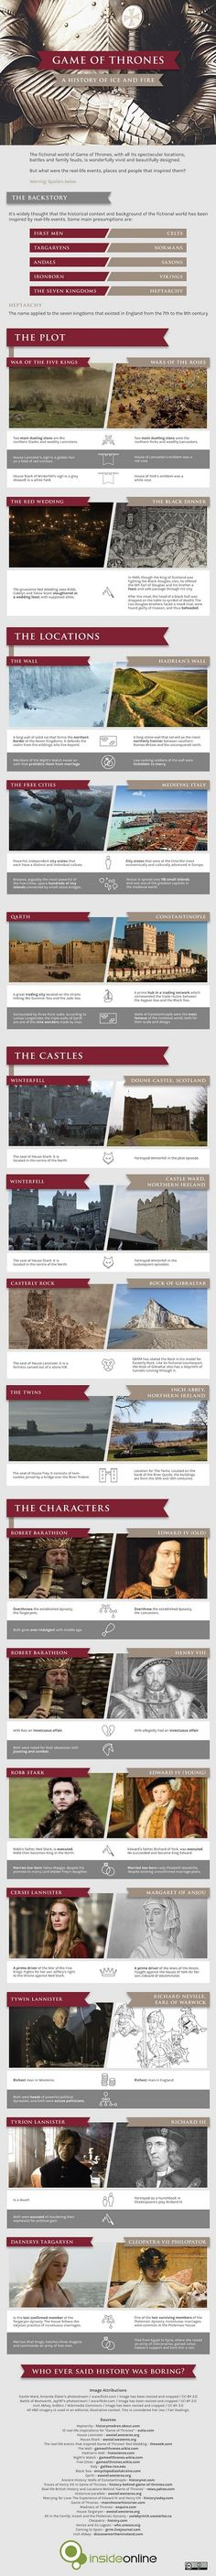 Historical Inspiration for Game of Thrones: INFOGRAPHIC